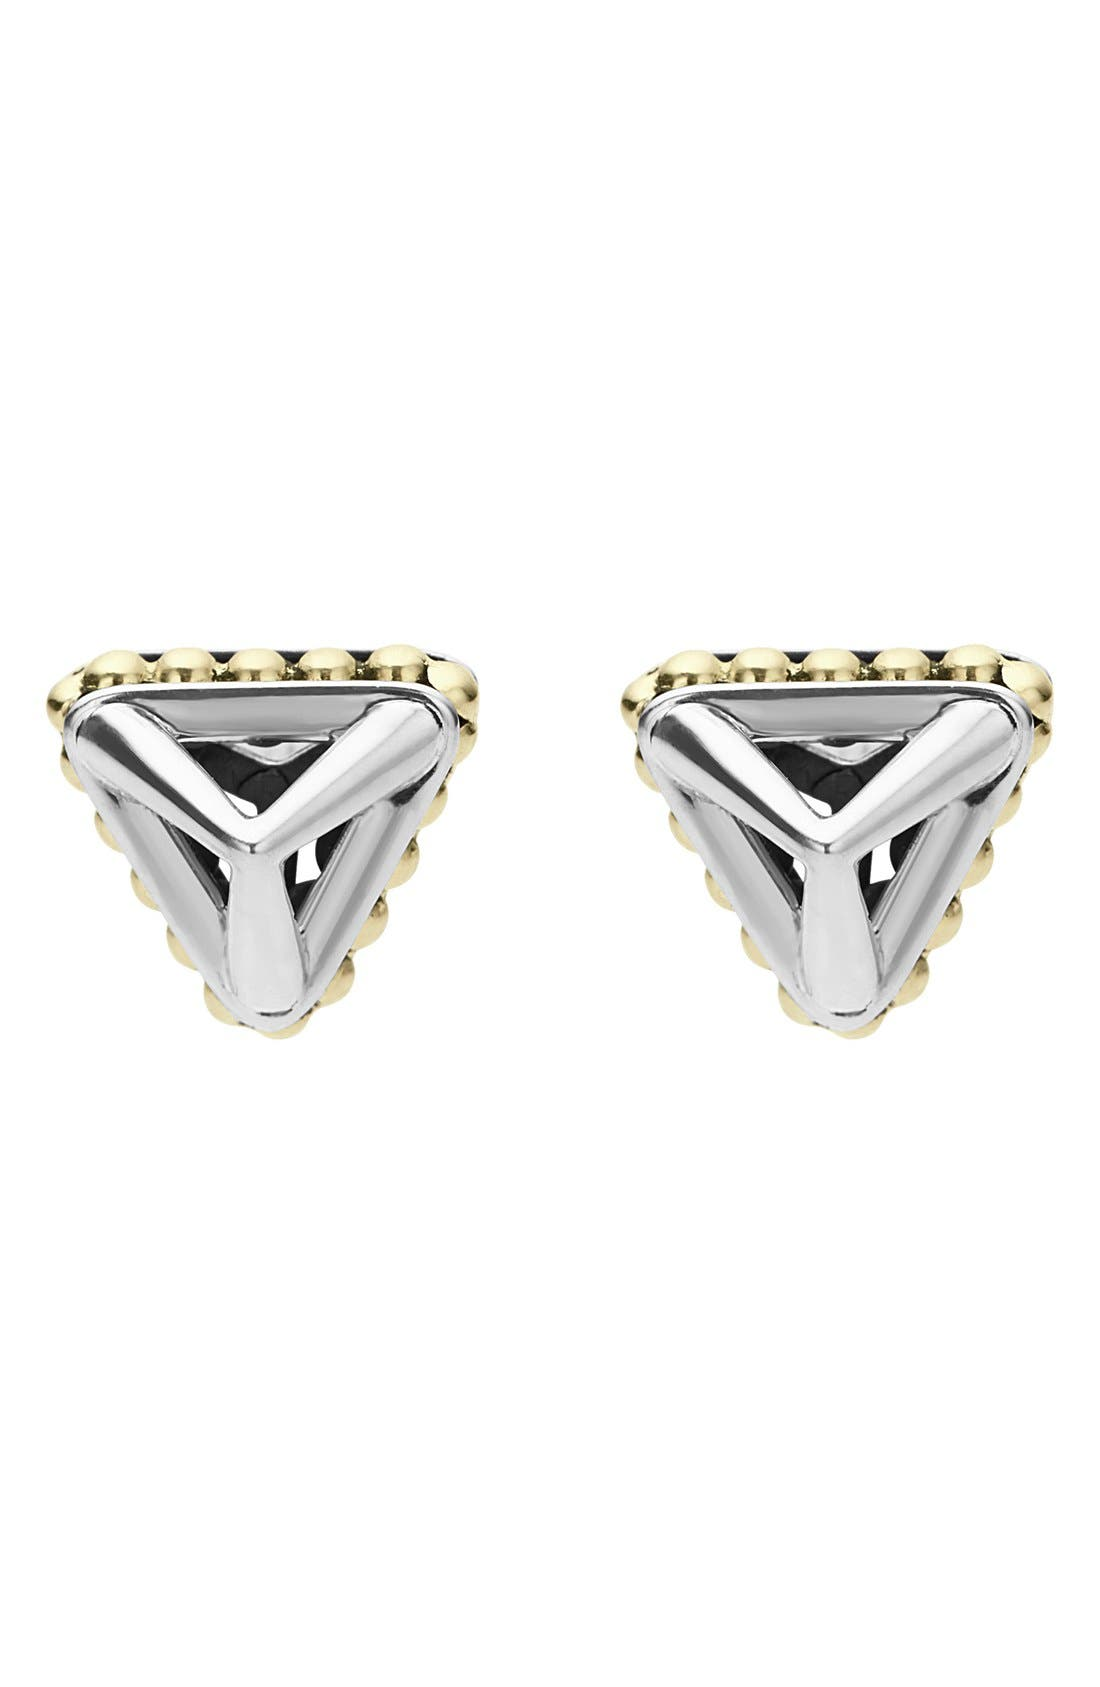 KSL Pyramid Stud Earrings,                             Alternate thumbnail 2, color,                             SILVER/ GOLD